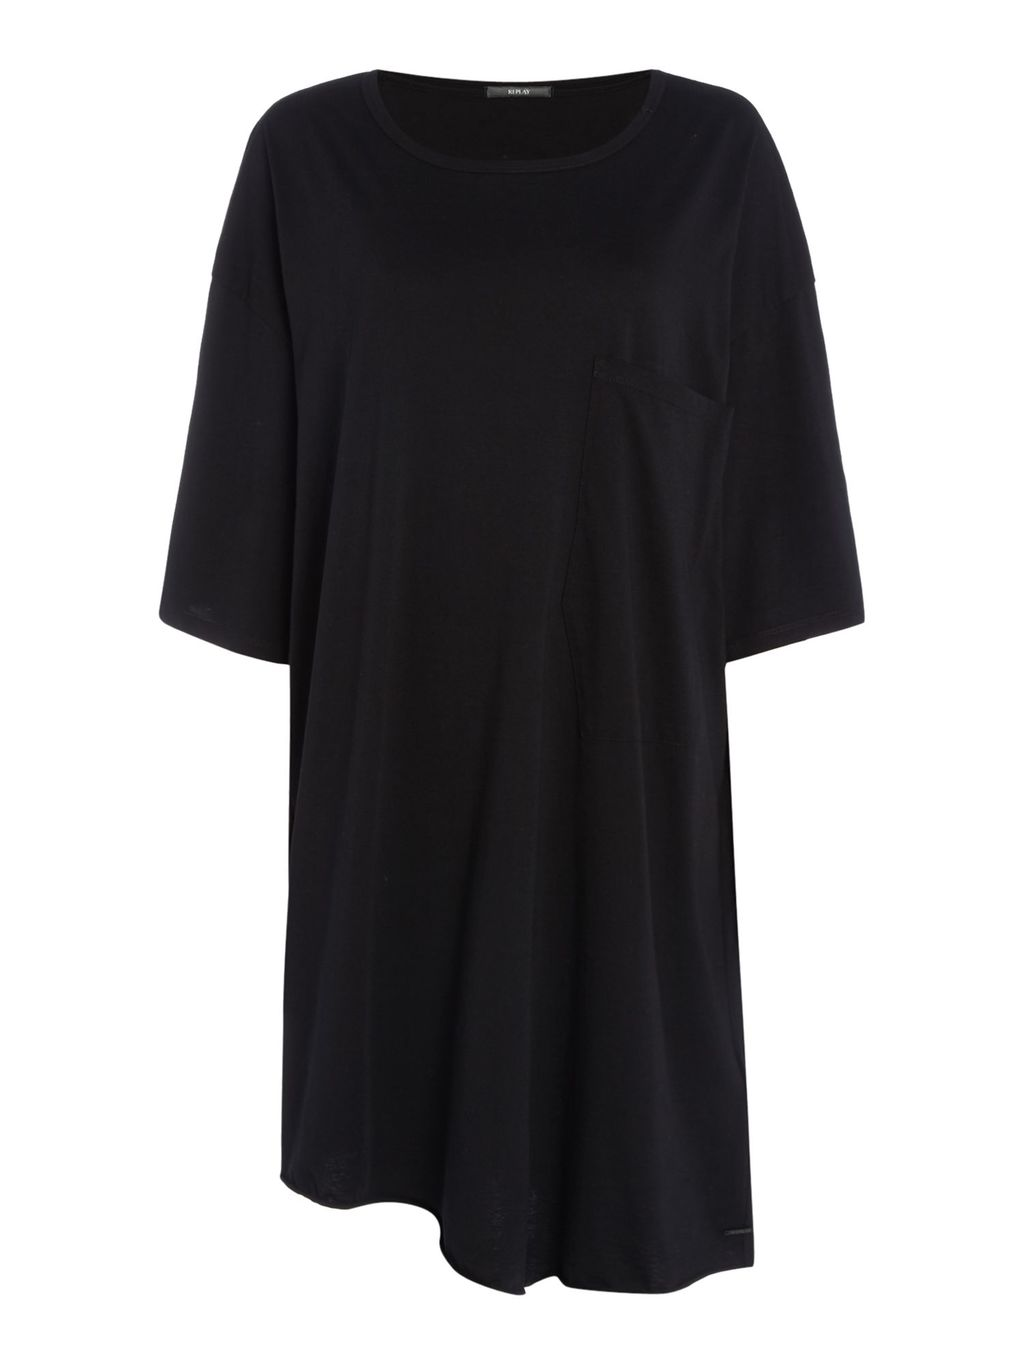 Short Jersey Dress, Black - style: t-shirt; length: mid thigh; neckline: round neck; sleeve style: dolman/batwing; fit: loose; pattern: plain; predominant colour: black; occasions: casual; fibres: cotton - stretch; sleeve length: half sleeve; pattern type: fabric; texture group: jersey - stretchy/drapey; season: s/s 2016; wardrobe: basic